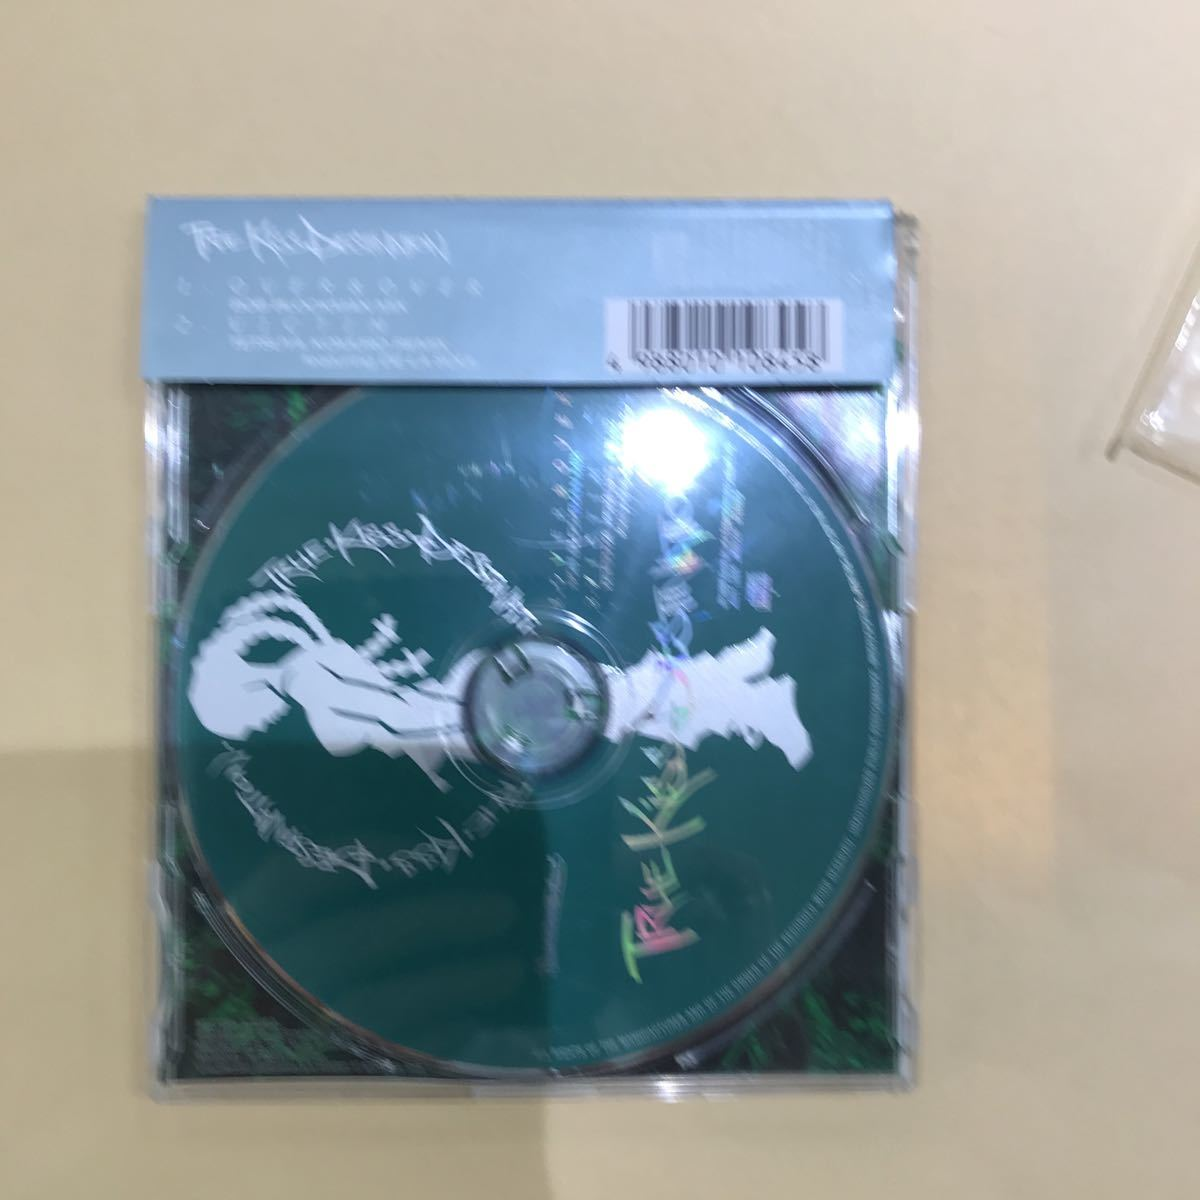 CD 中古☆【邦楽】TRHE kiss DESTINATION